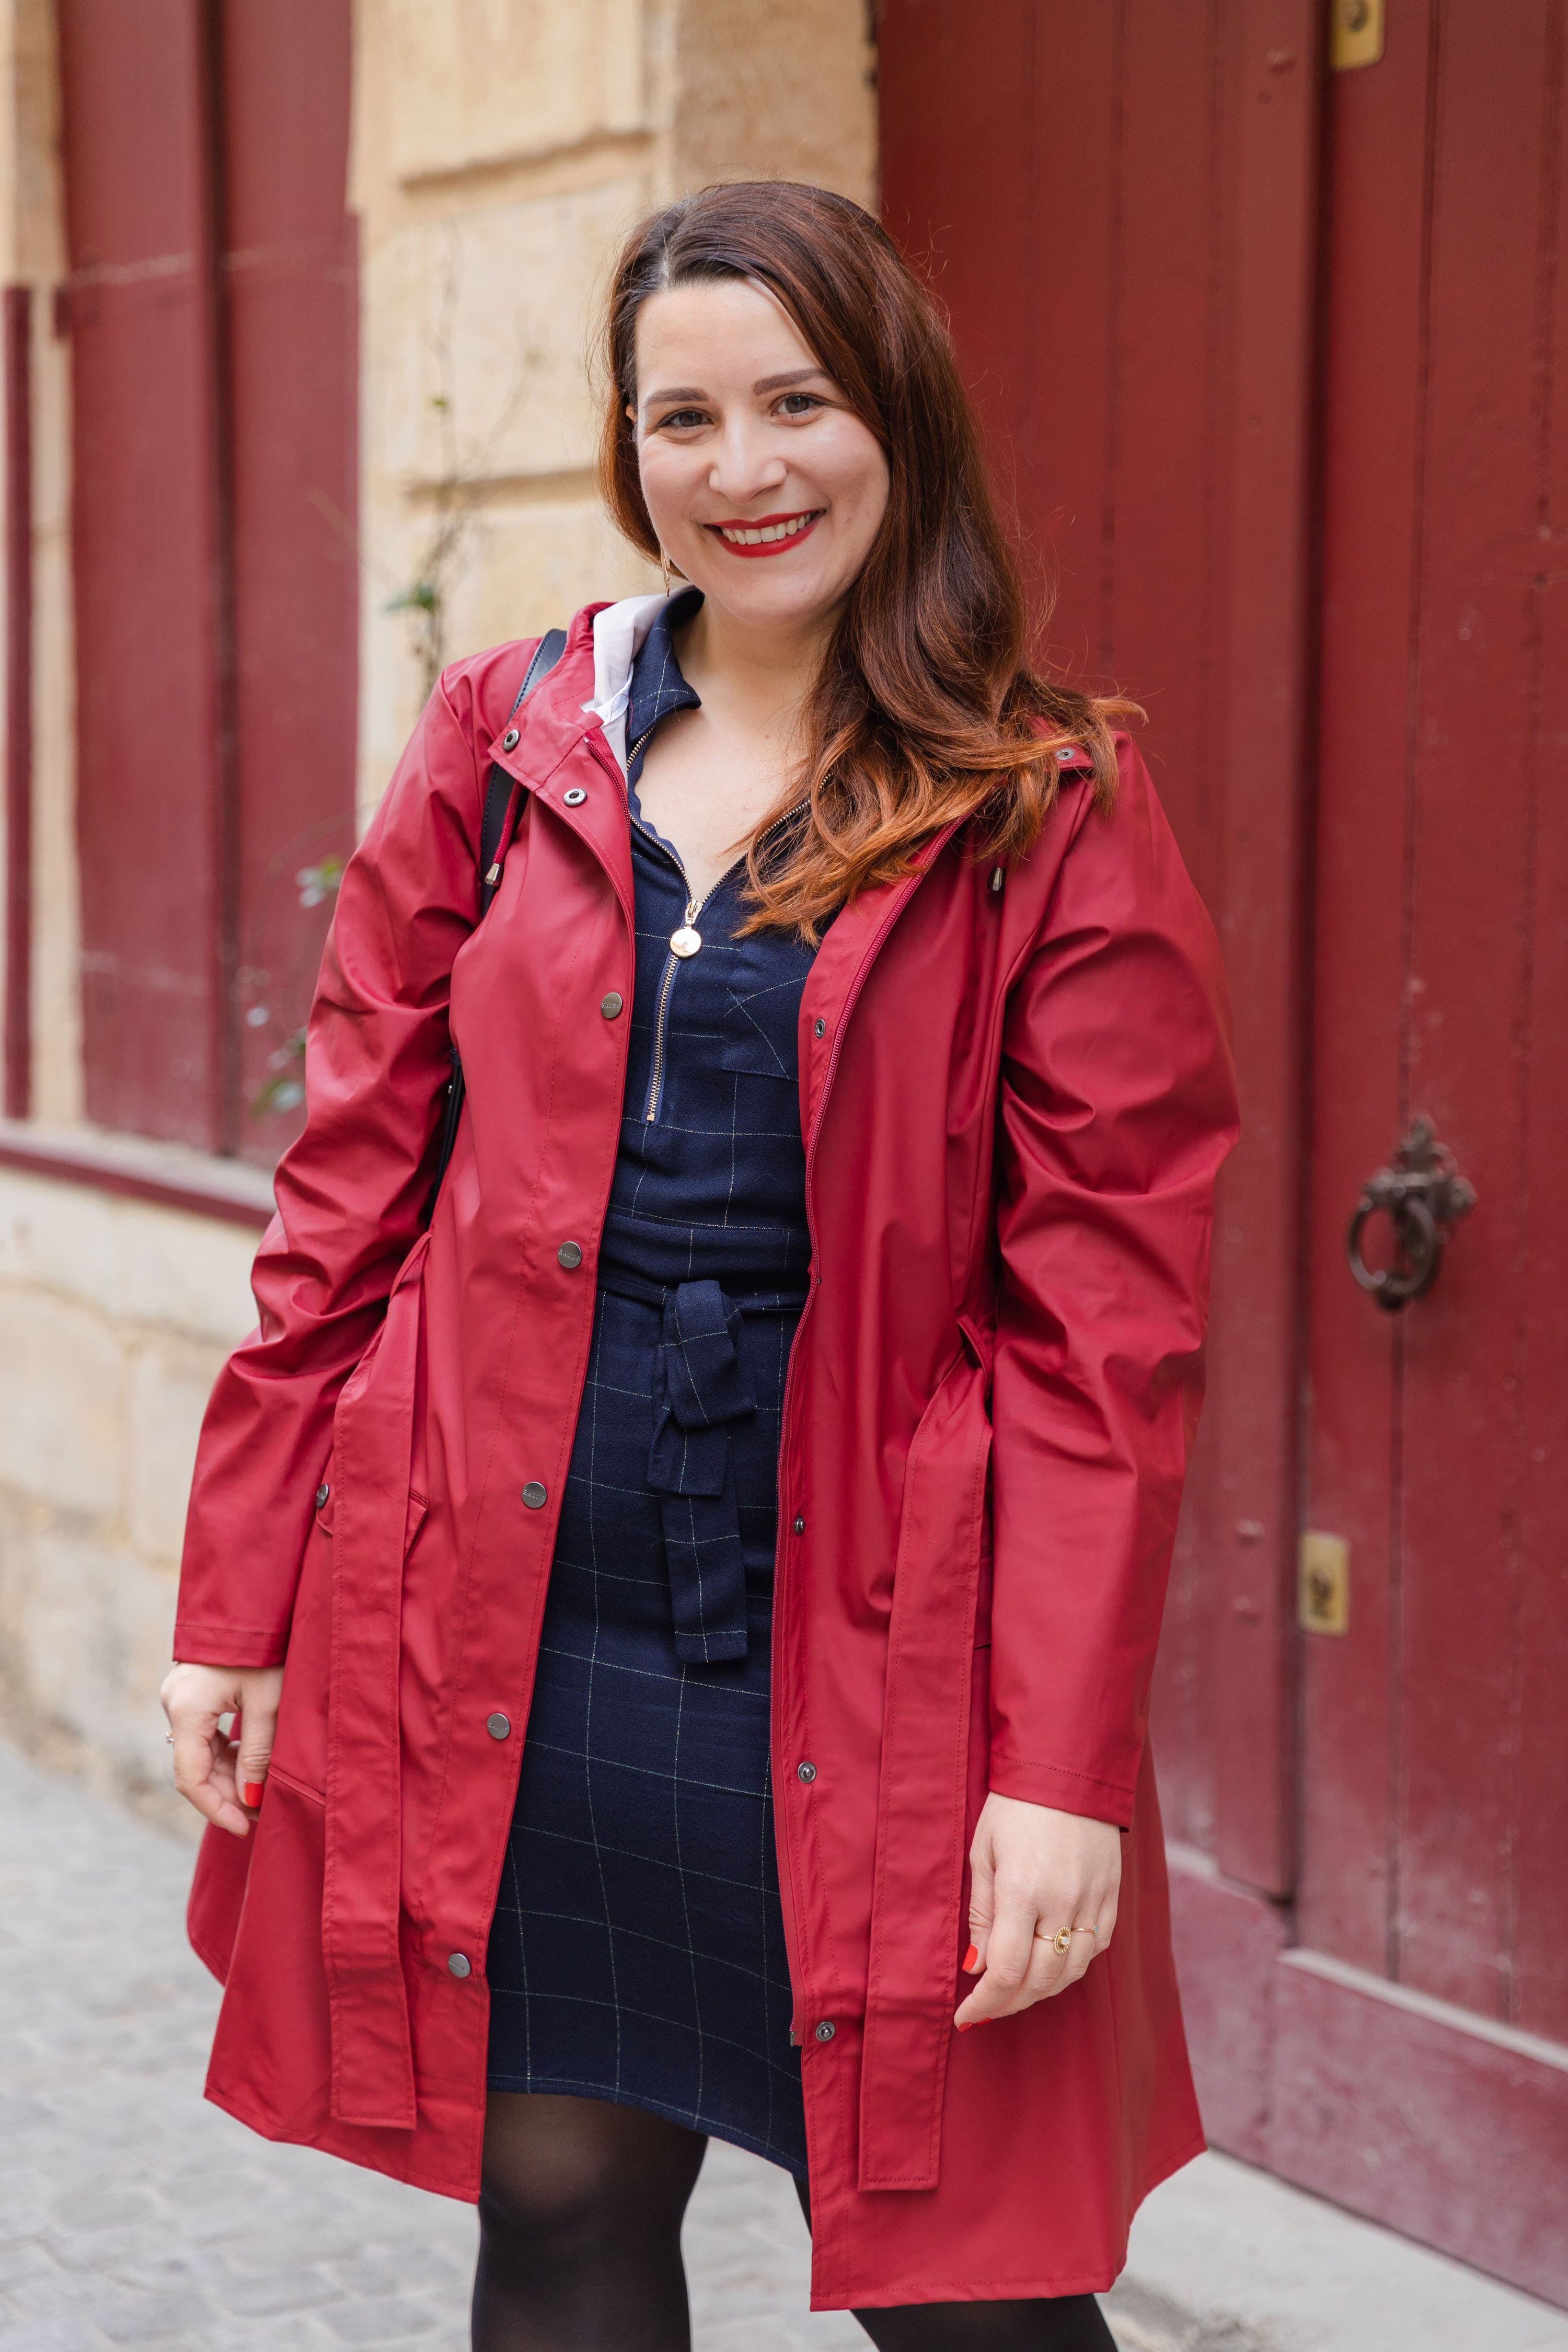 Veste-rains-rouge